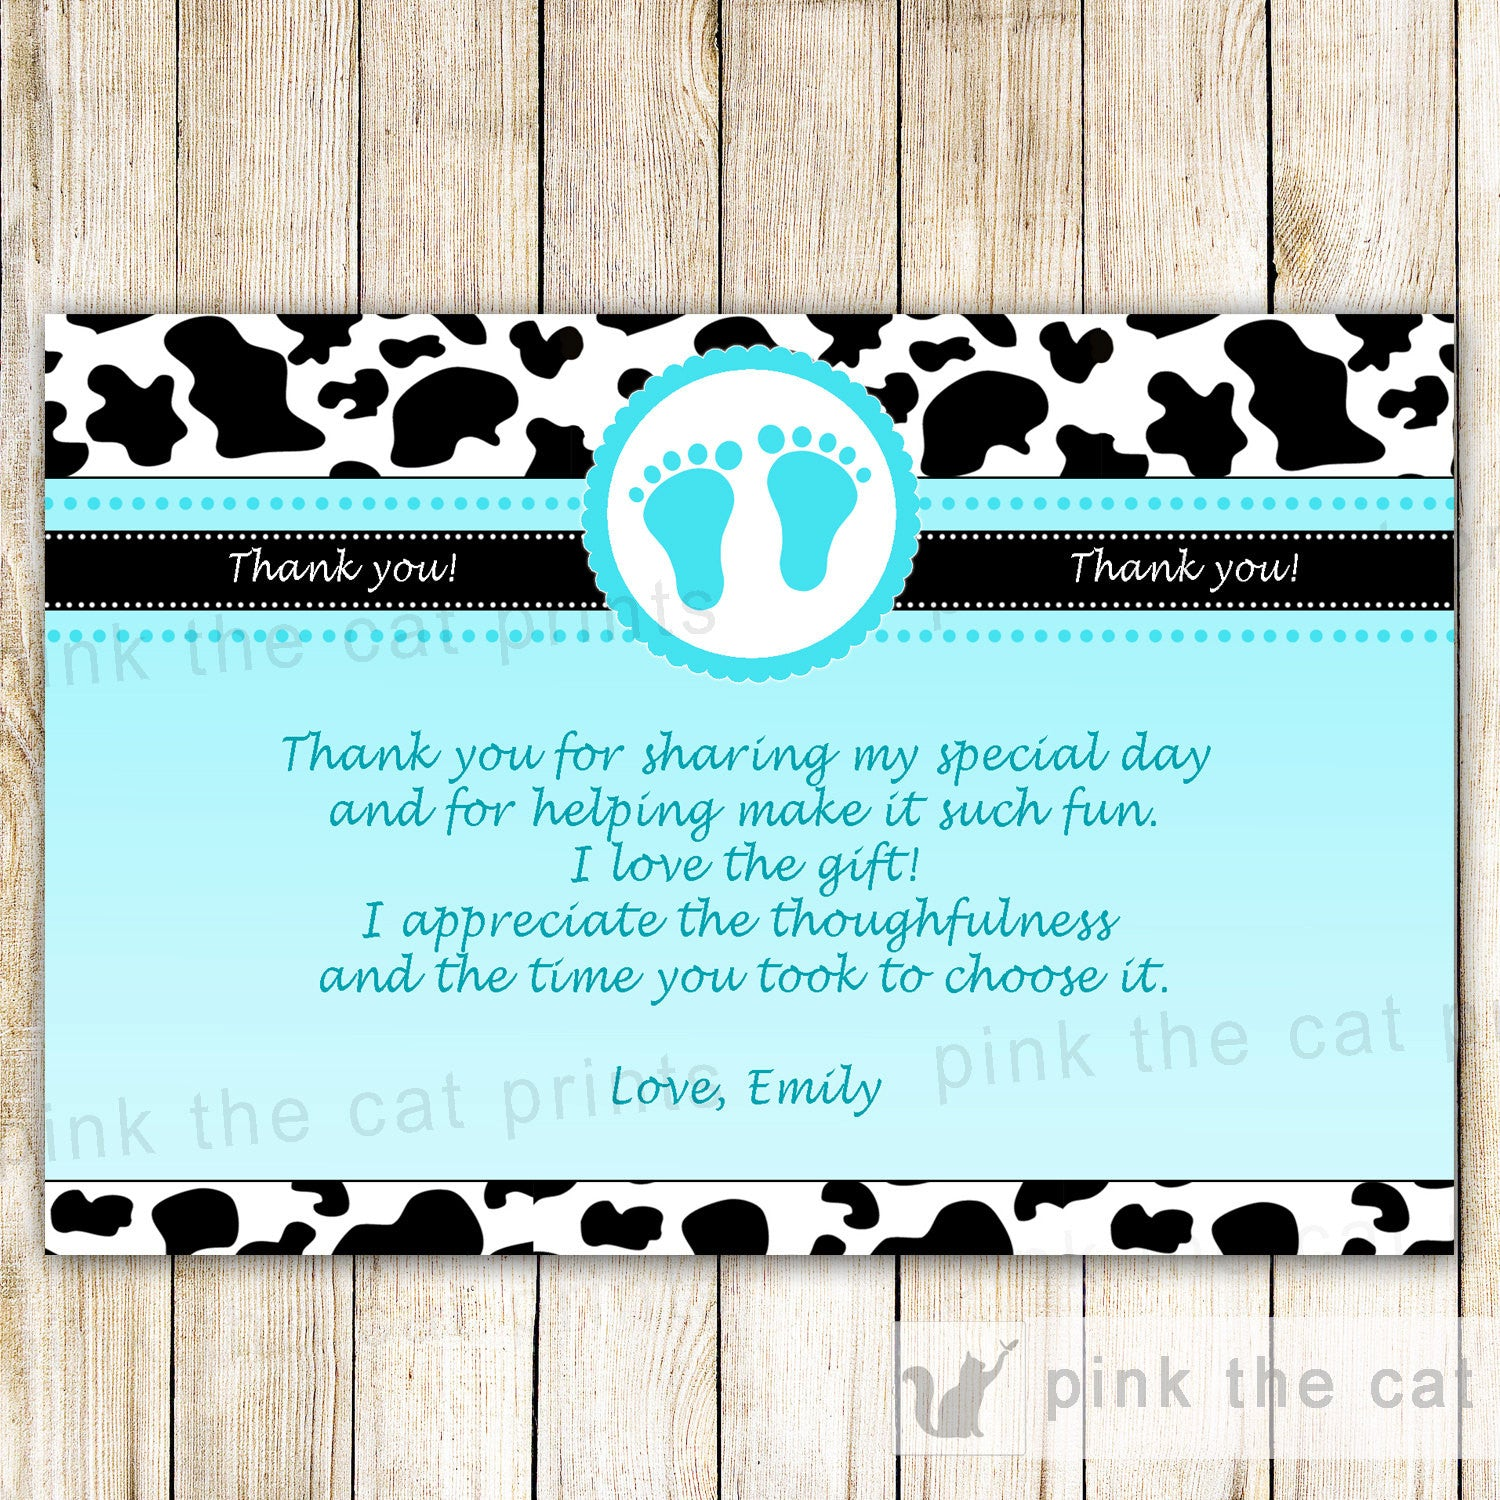 Cow Baby Boy Shower Thank You Card Note Turquoise Pink The Cat